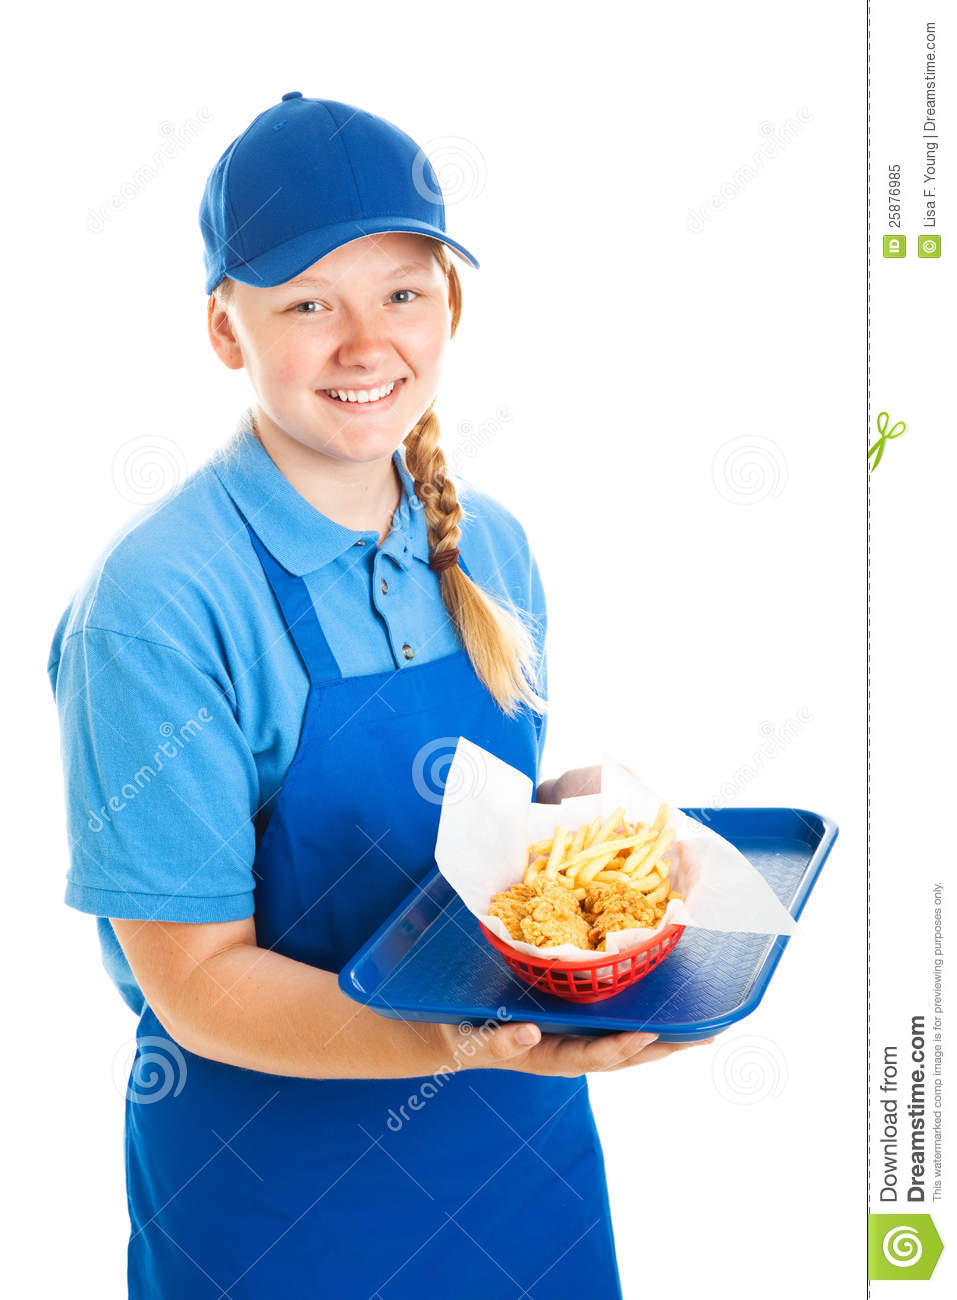 Fast food worker on her knees in the bathroom 7